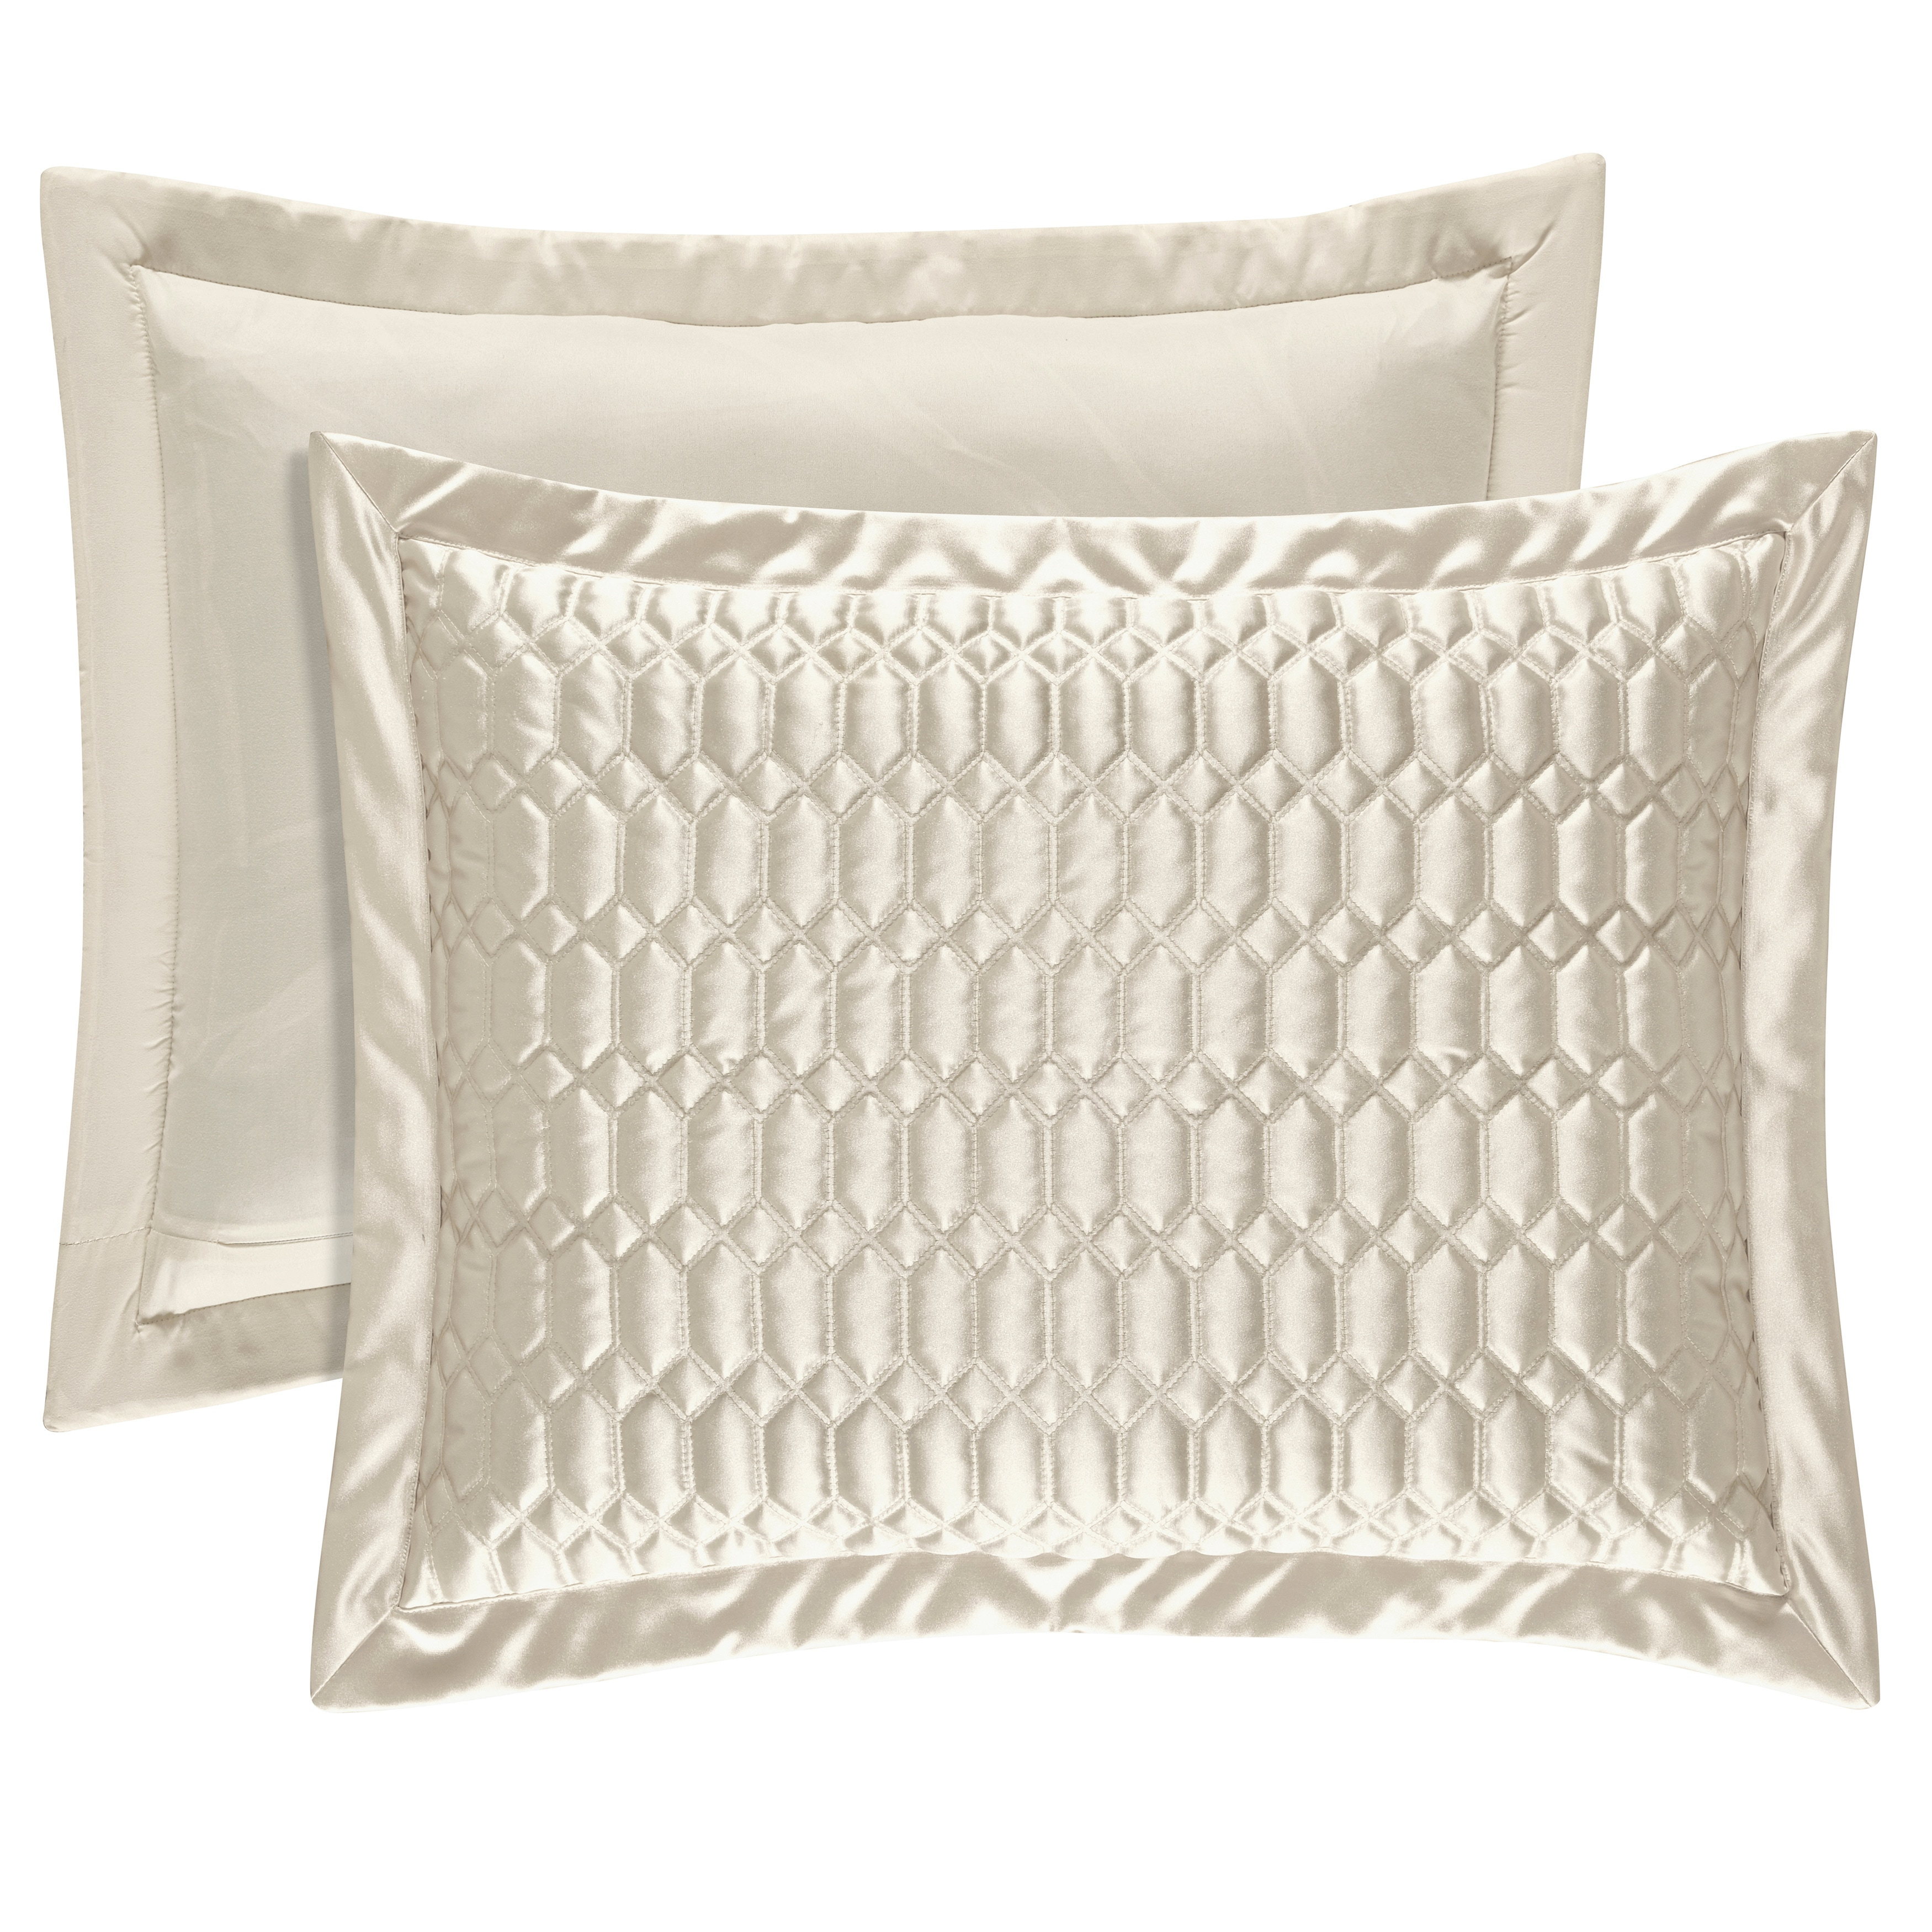 Five Queens Court Saranda Quilted Sham King Size In Silver As Is Item Silver King Sham Pillow Shams Queens New York Quilted Pillow Shams